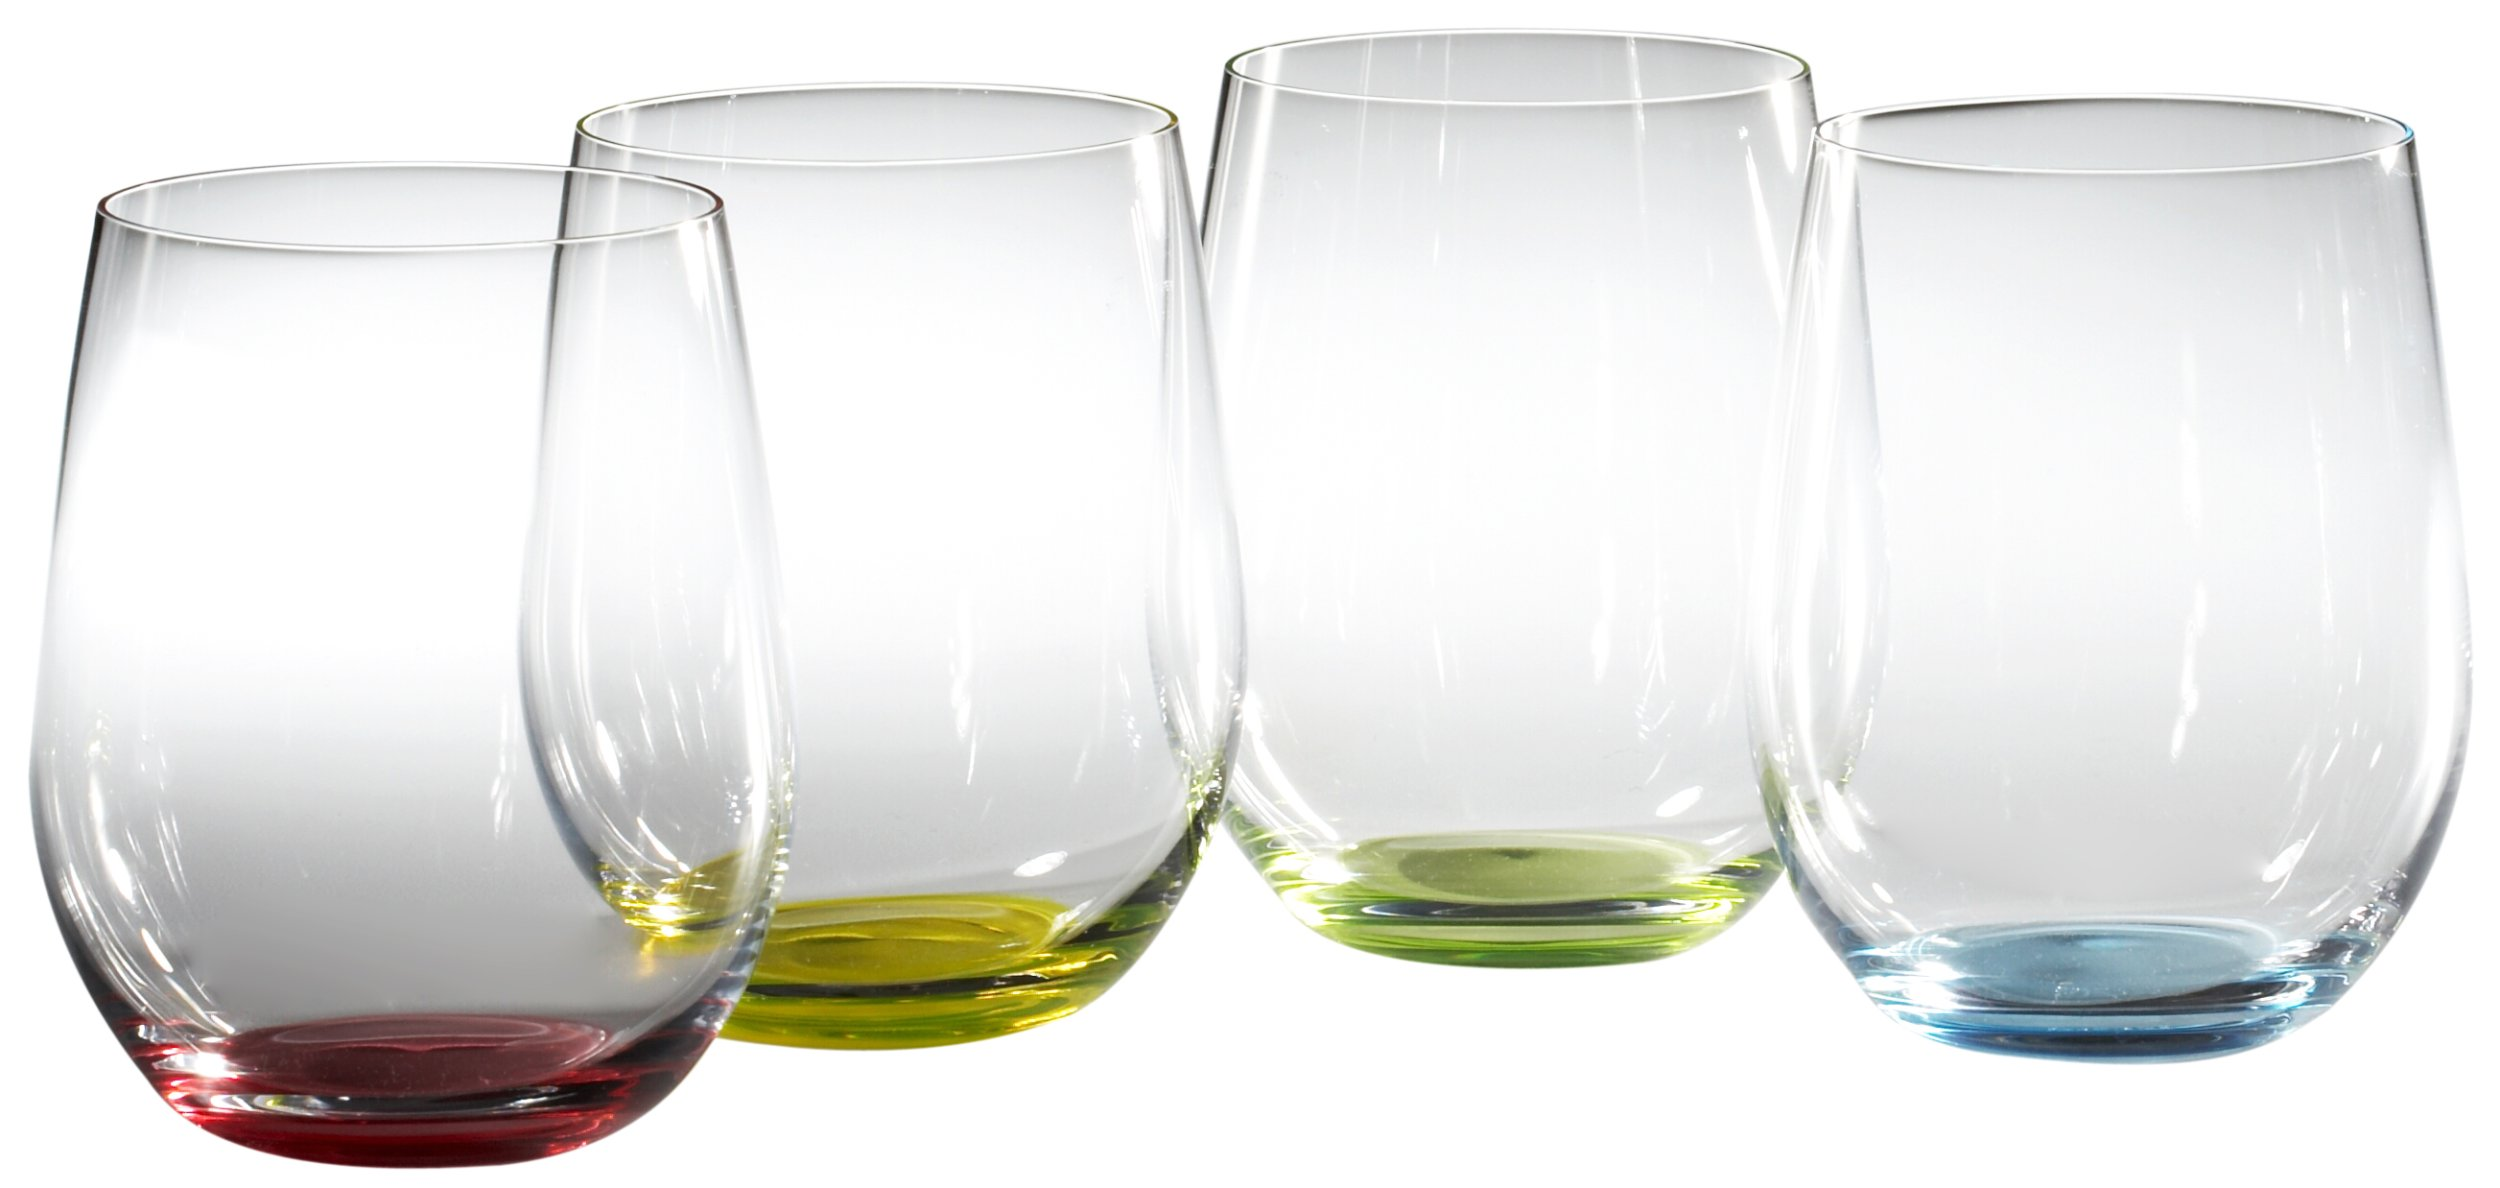 Riedel Happy O Wine Tumblers, Set of 4 by Riedel (Image #1)